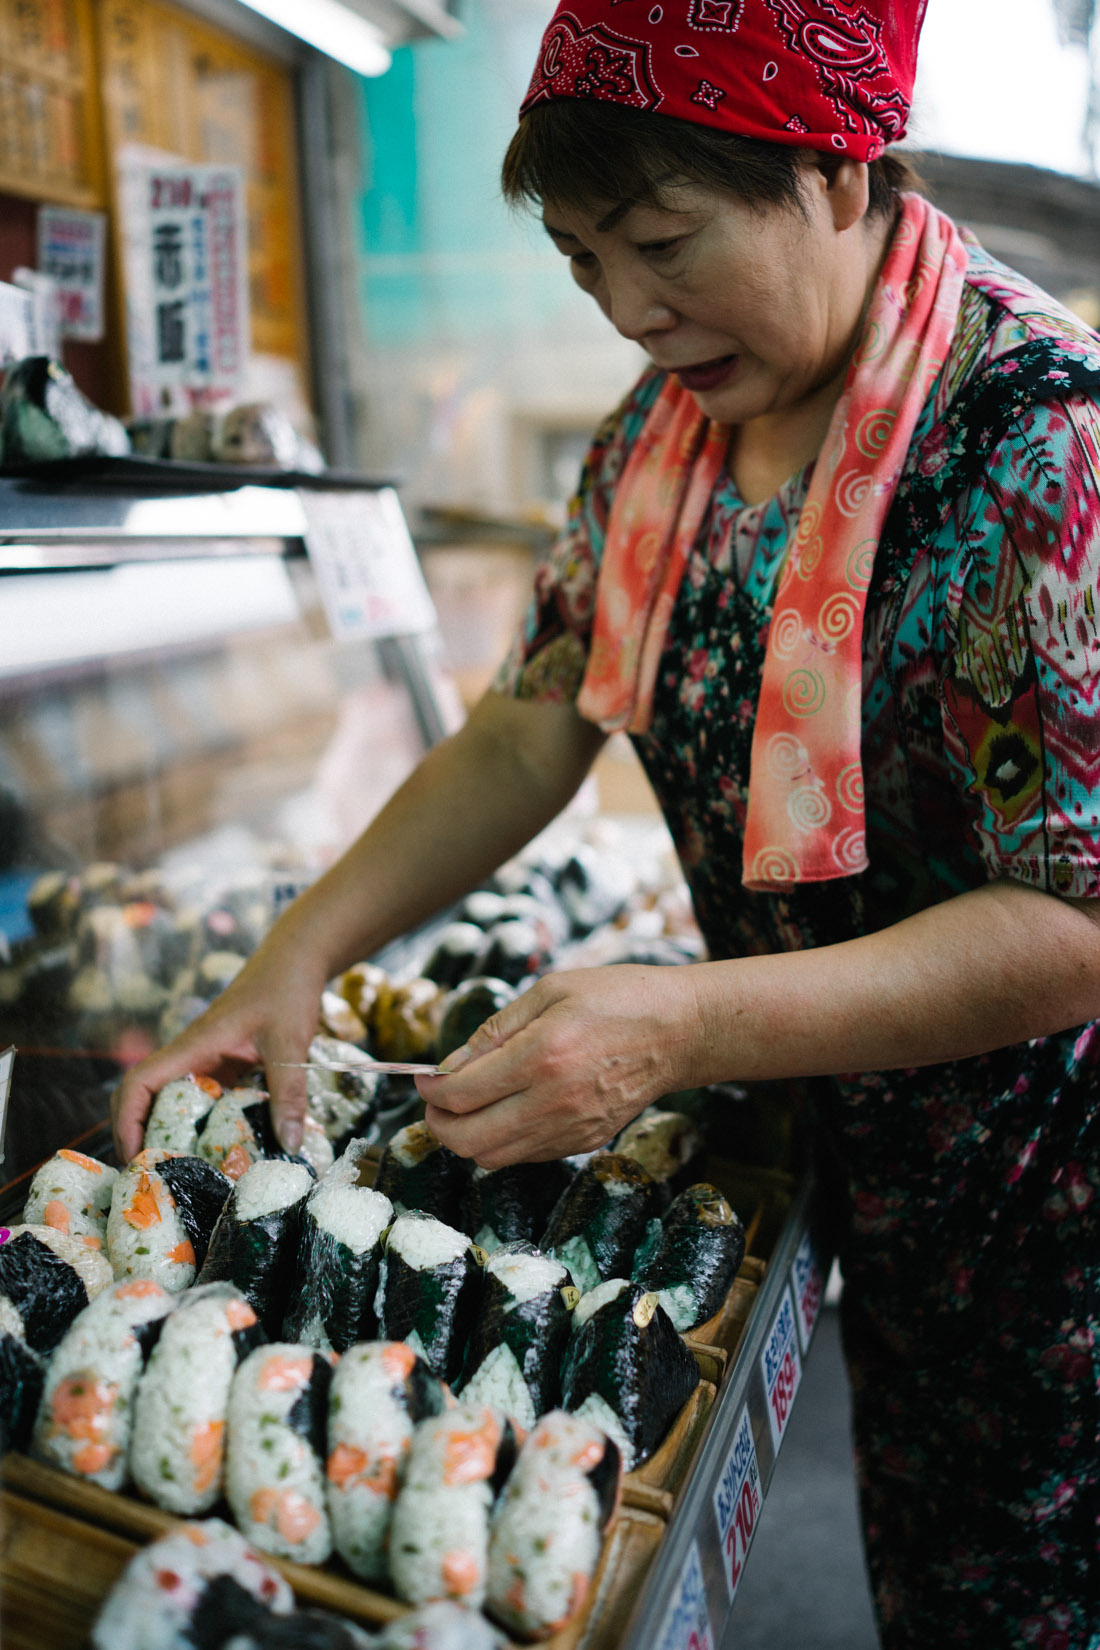 Street food stall dedicated to onigiri, the real deal.